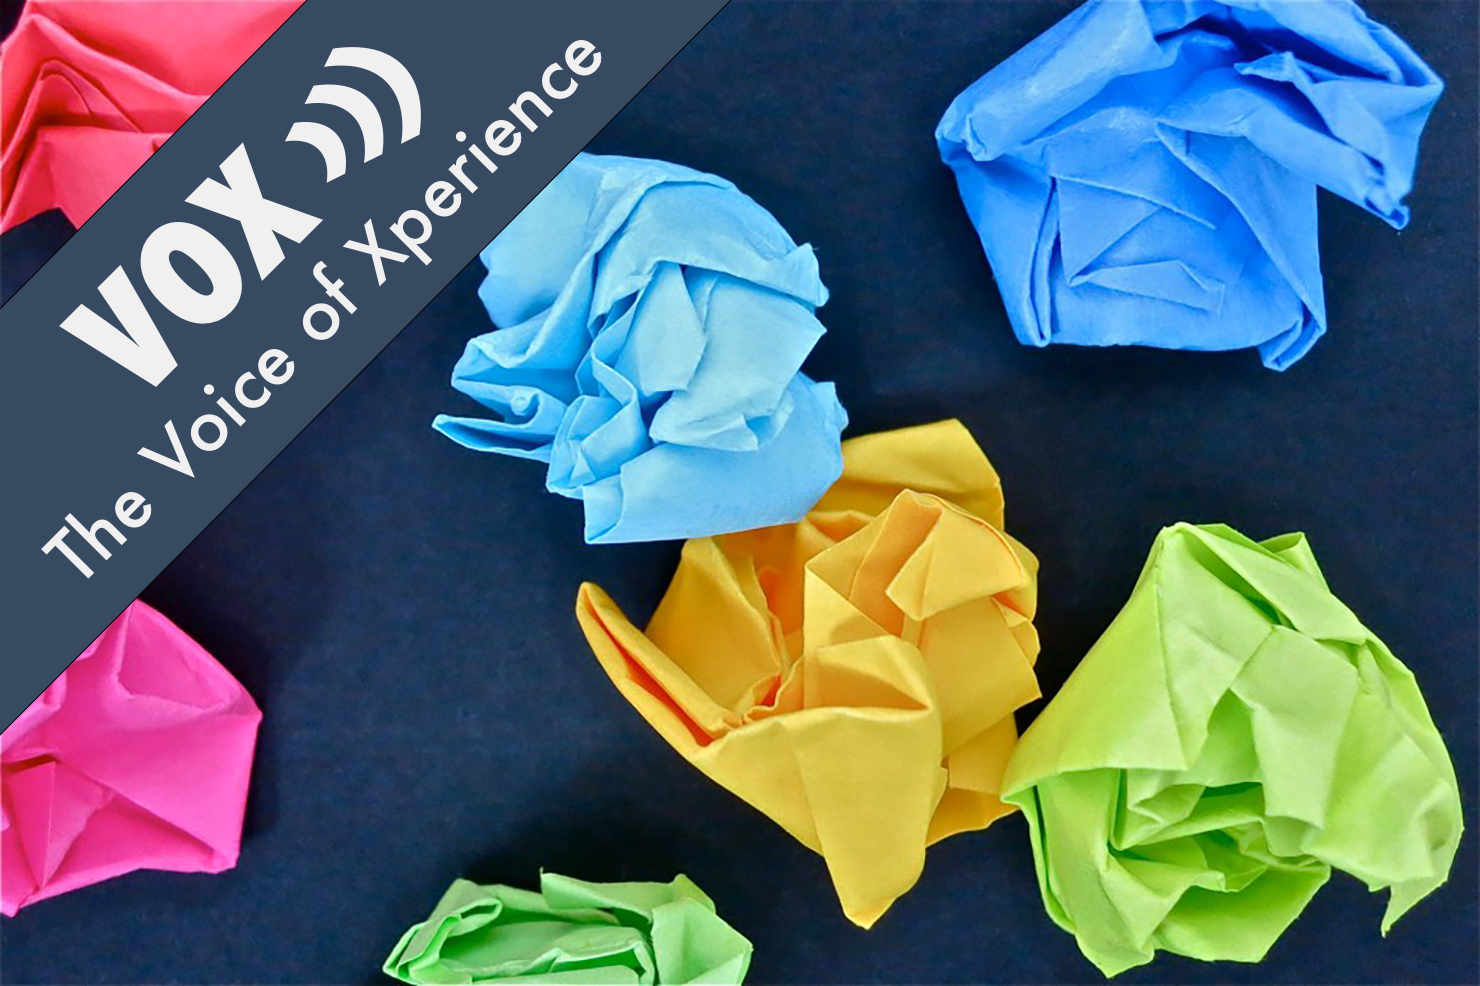 Post-it Notes (Voice of Xperience on taming information overload)